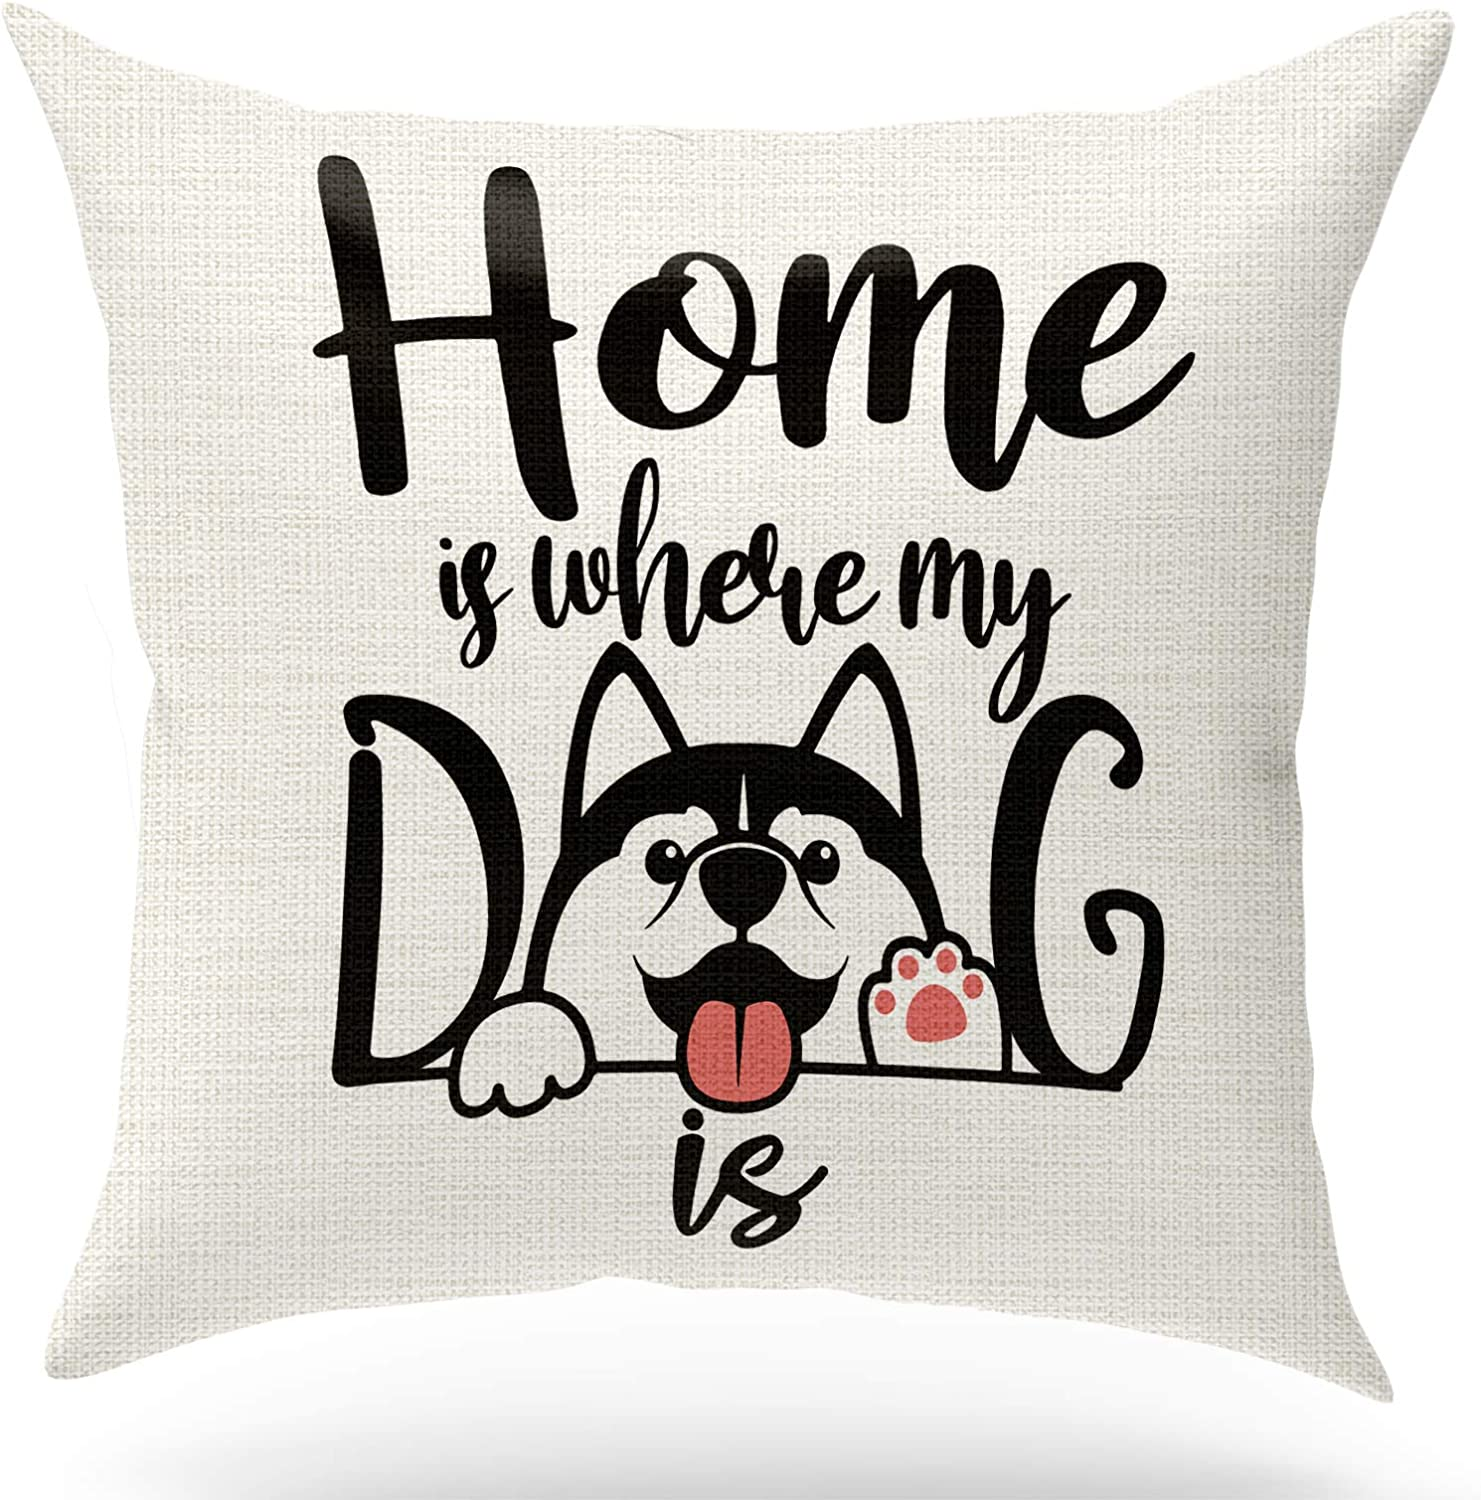 KongMoTree Dog Lover Linen Throw Pillow Case Cushion Cover,Funny Sweet Warm Sayings Home is Where My Dog is,Nursery Decoration Children Room Decorative Home Decor for Sofa Bedroom Office,18x18 inch